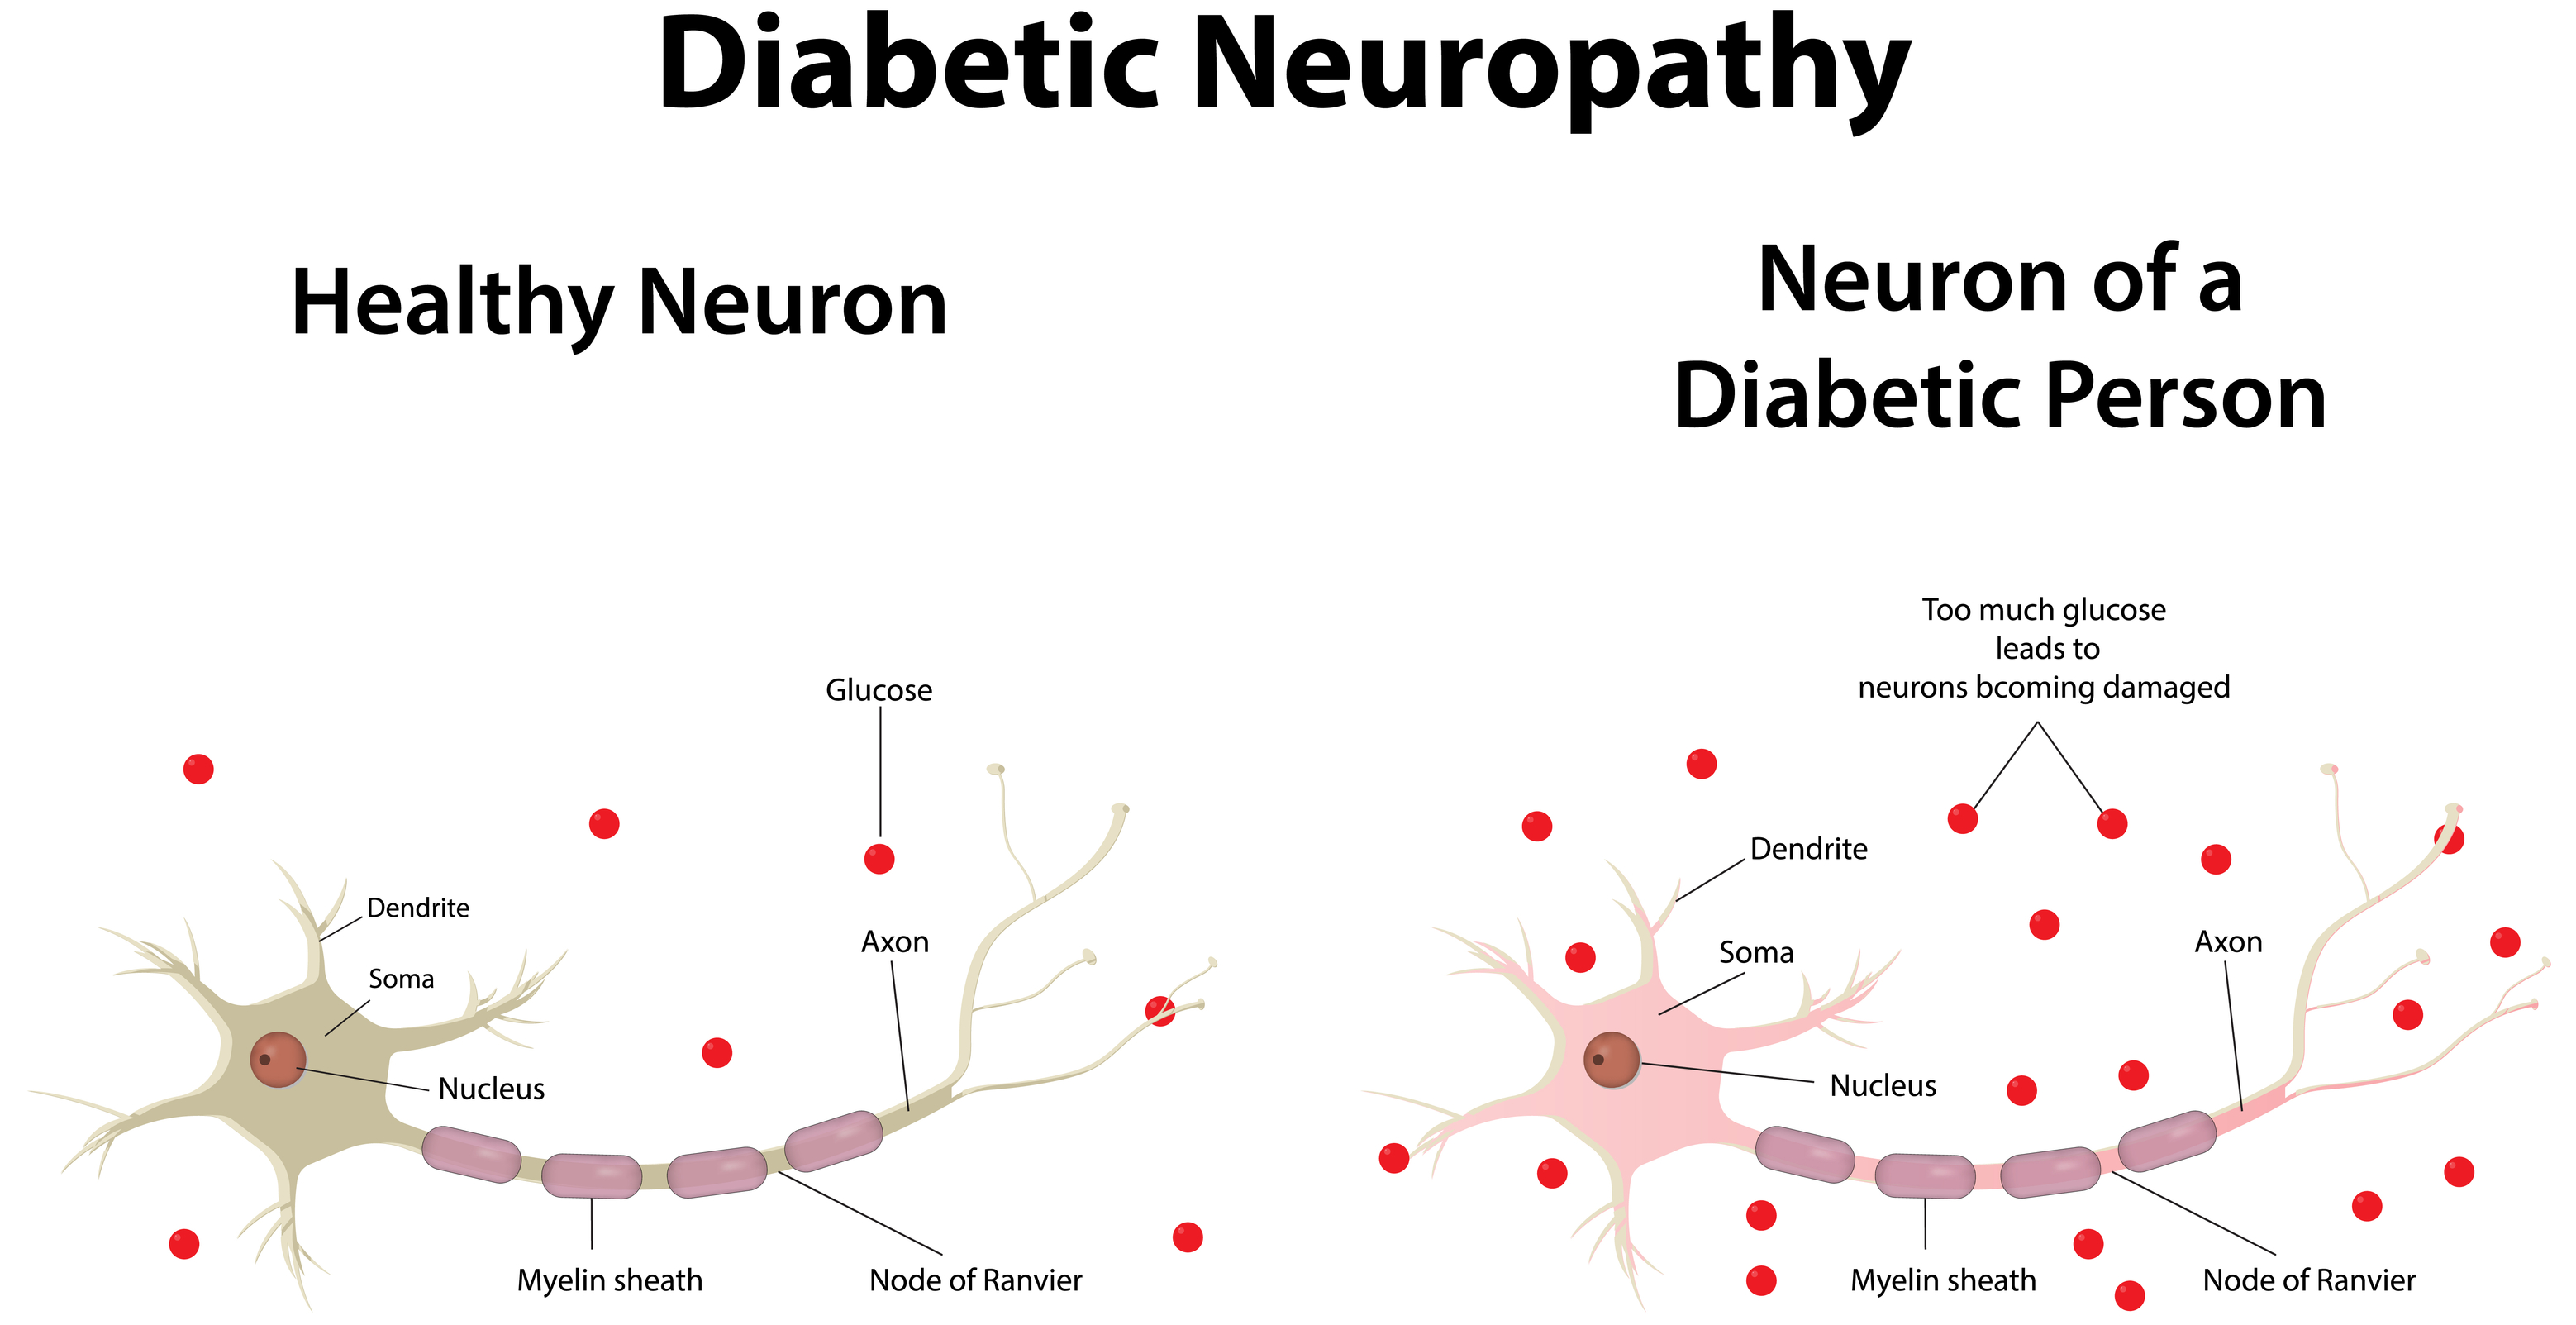 Diabetic Neuropathy - The Nerve Damage of Diabetes